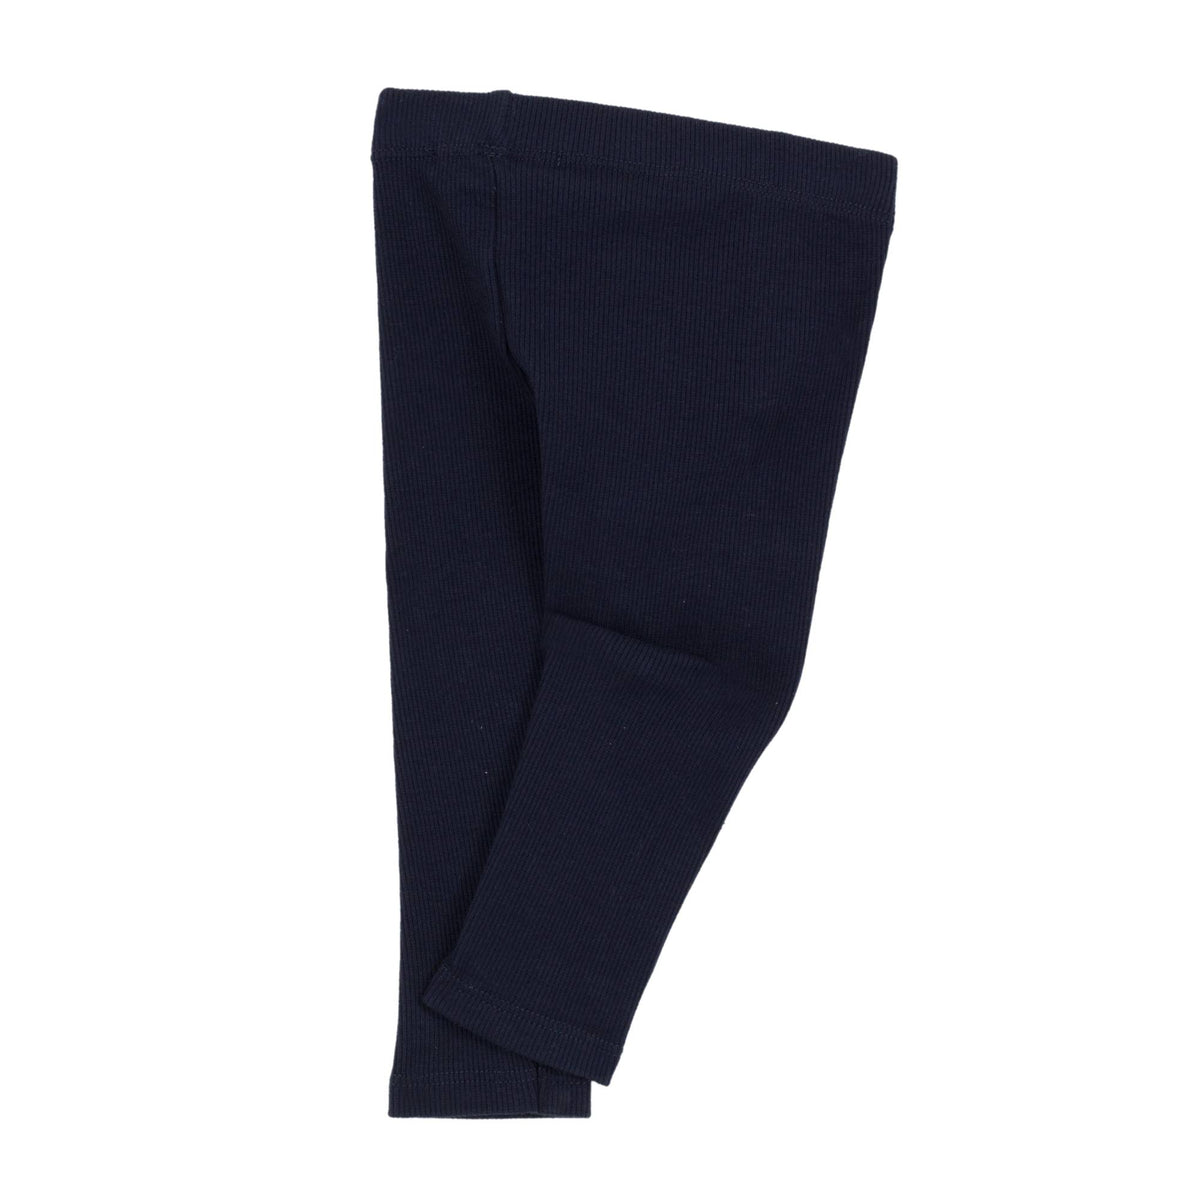 Jean Bourgert navy blue cotton leggings is punctuated by fine ribs and large ivory ribbon at the waist.